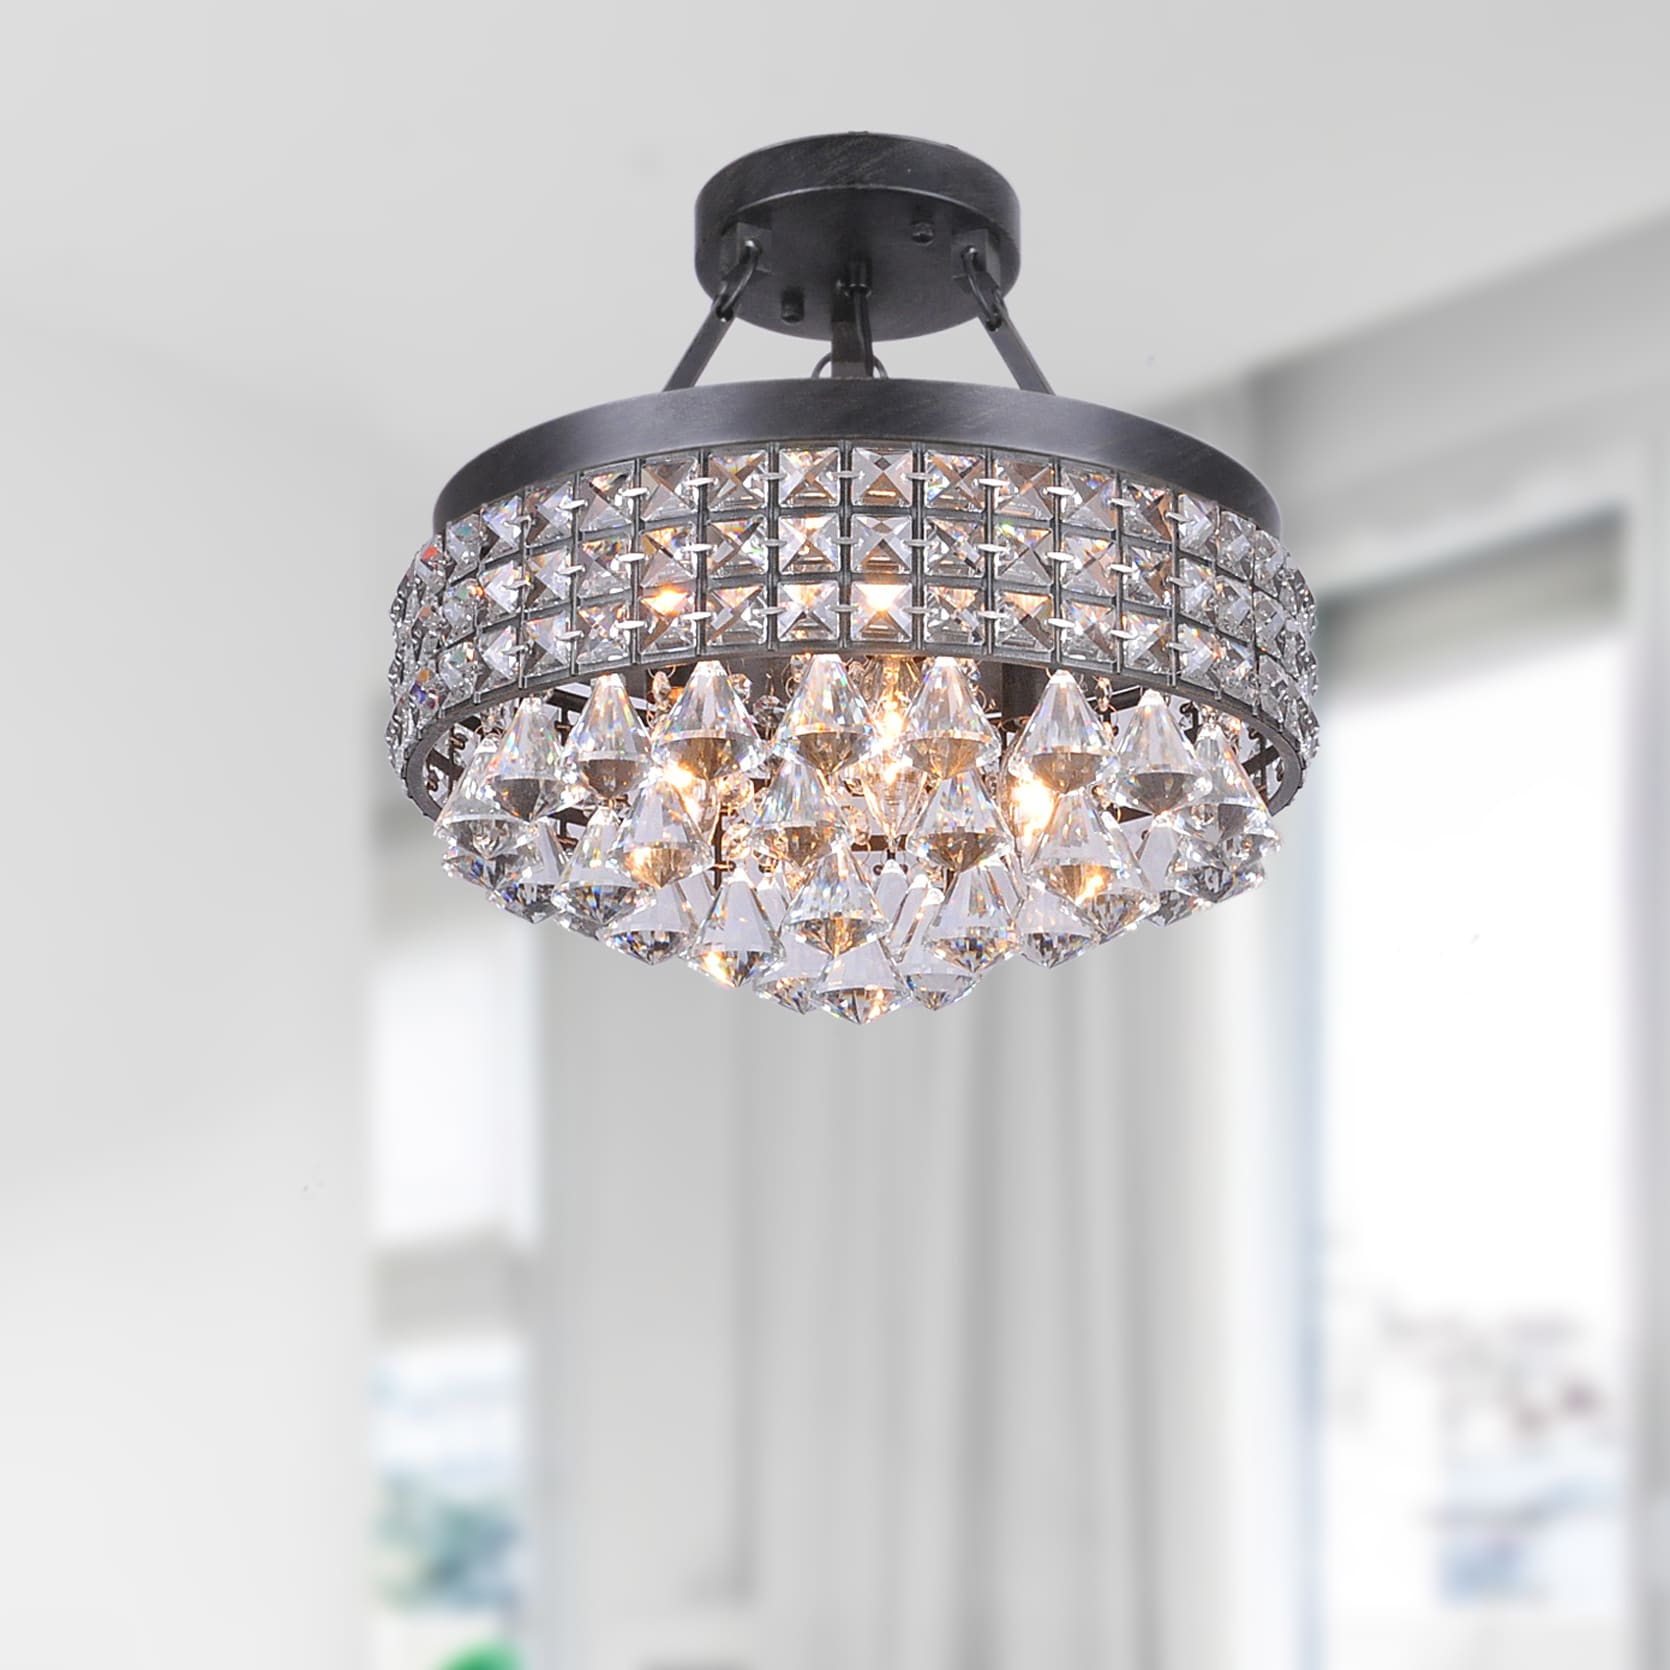 antonia light crystal semiflush mount chandelier with antique black ironshade  free shipping today  overstockcom  . antonia light crystal semiflush mount chandelier with antique